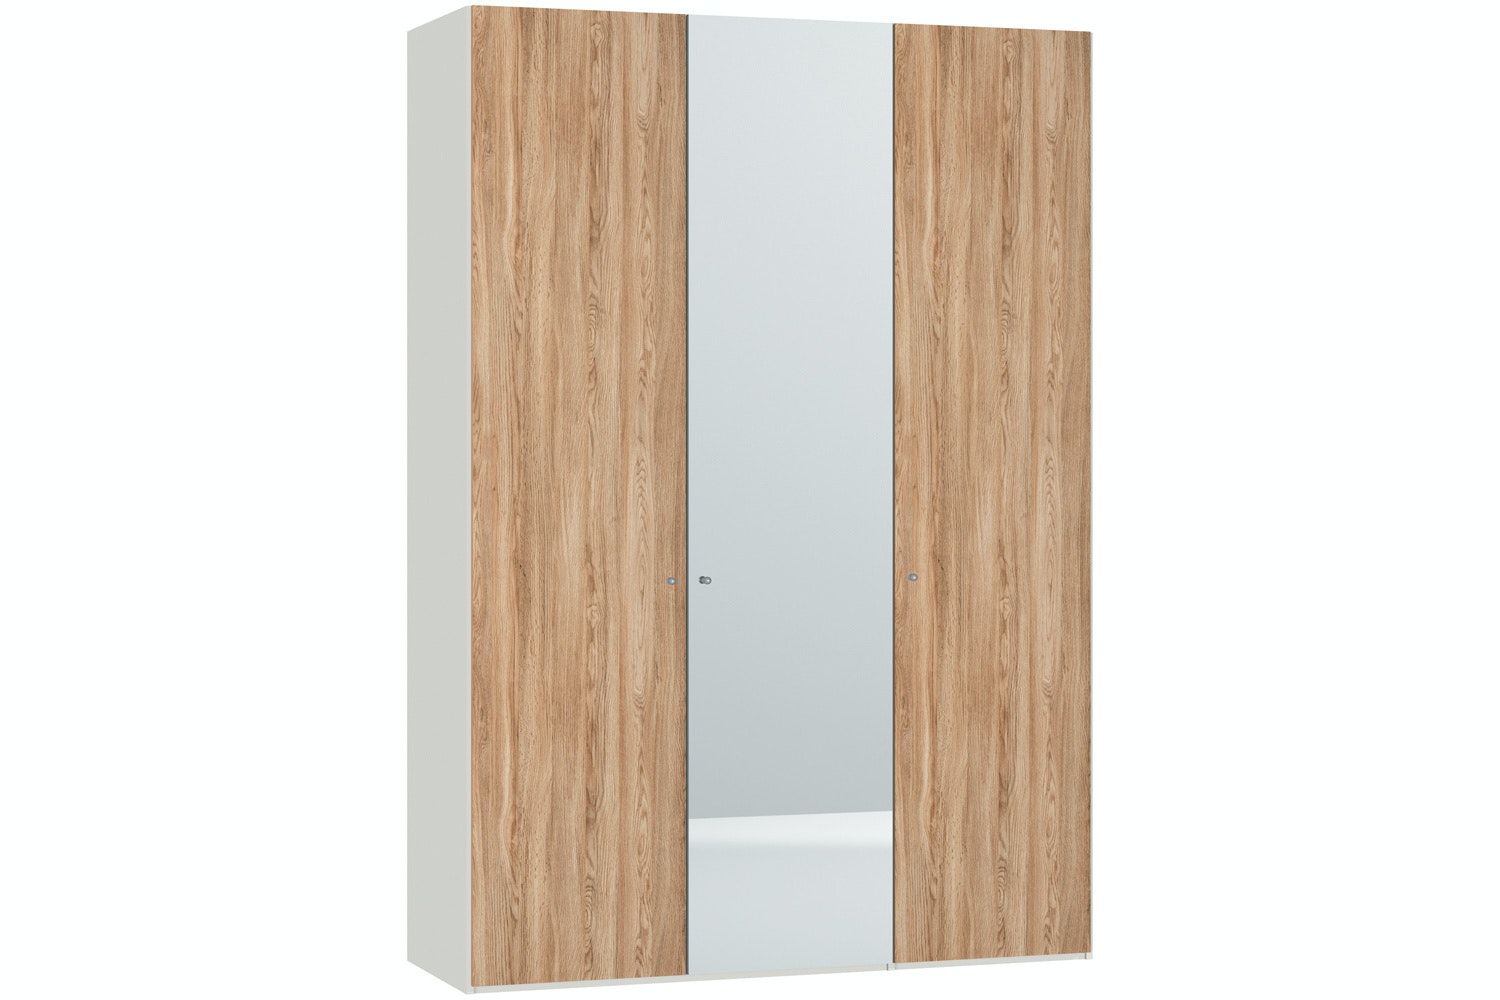 Christine Hinged 3 Door Wardrobe 152Cm |Oak + Mirror